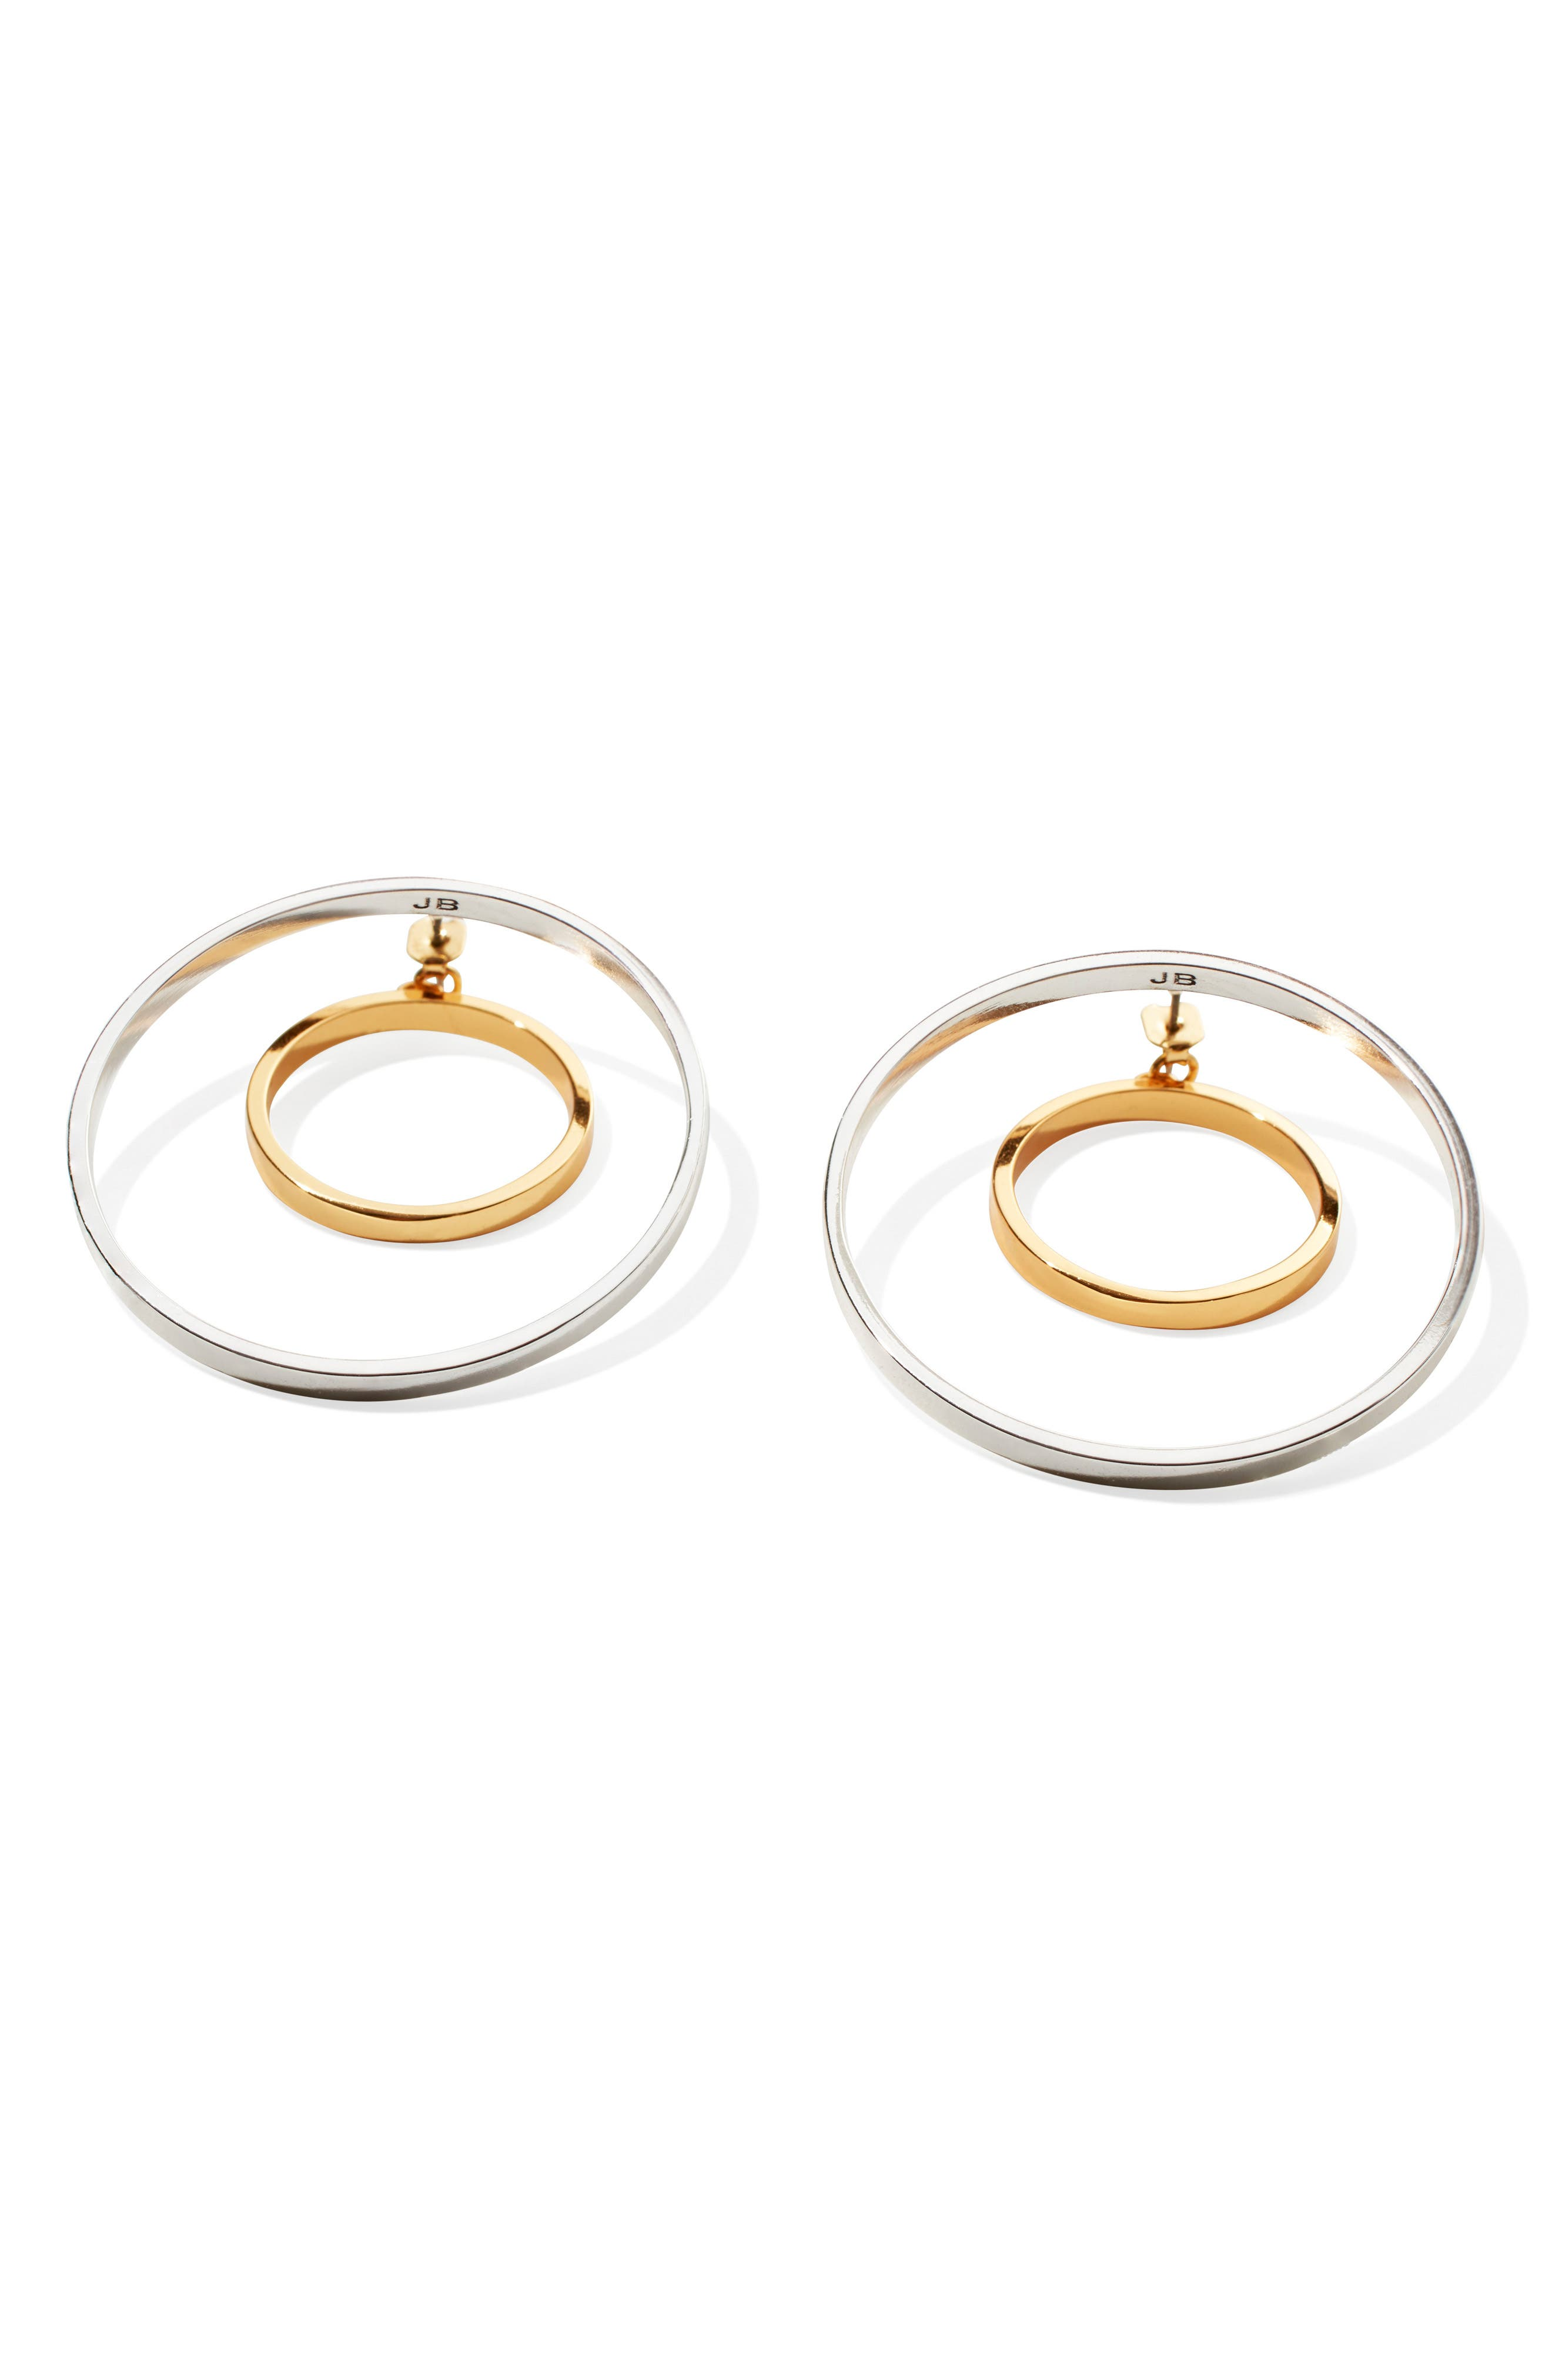 Rise Hoop Earrings,                             Alternate thumbnail 4, color,                             Two Tone